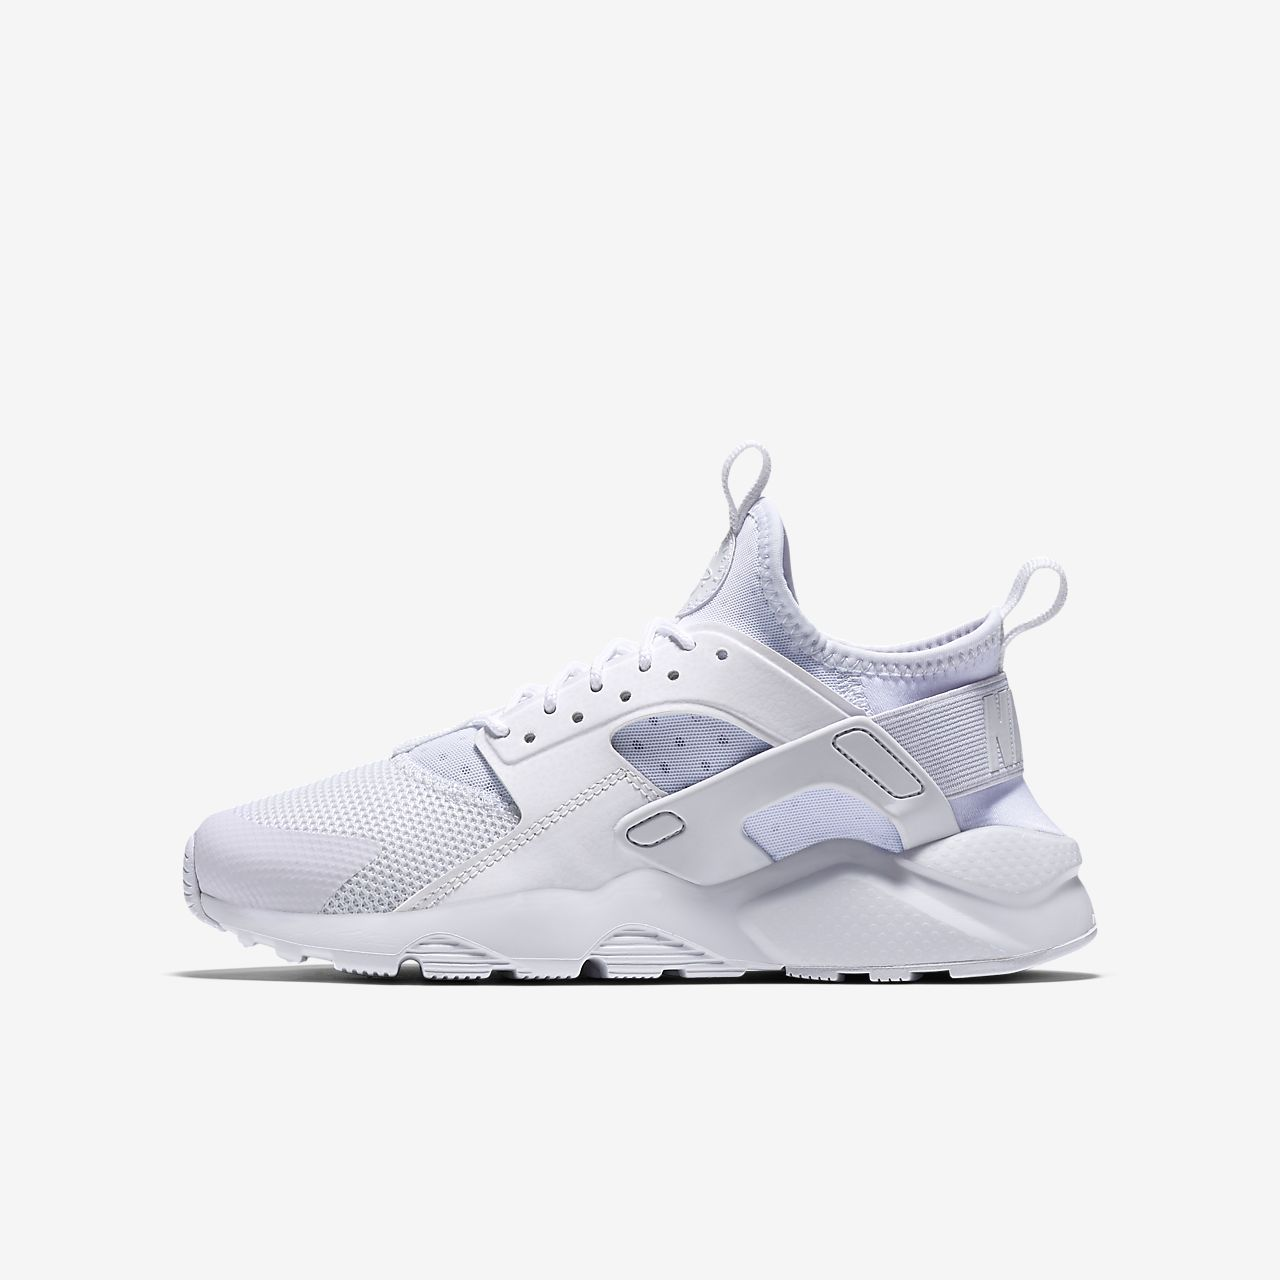 ce8298b8926 Nike Air Huarache Ultra Older Kids  Shoe. Nike.com CA